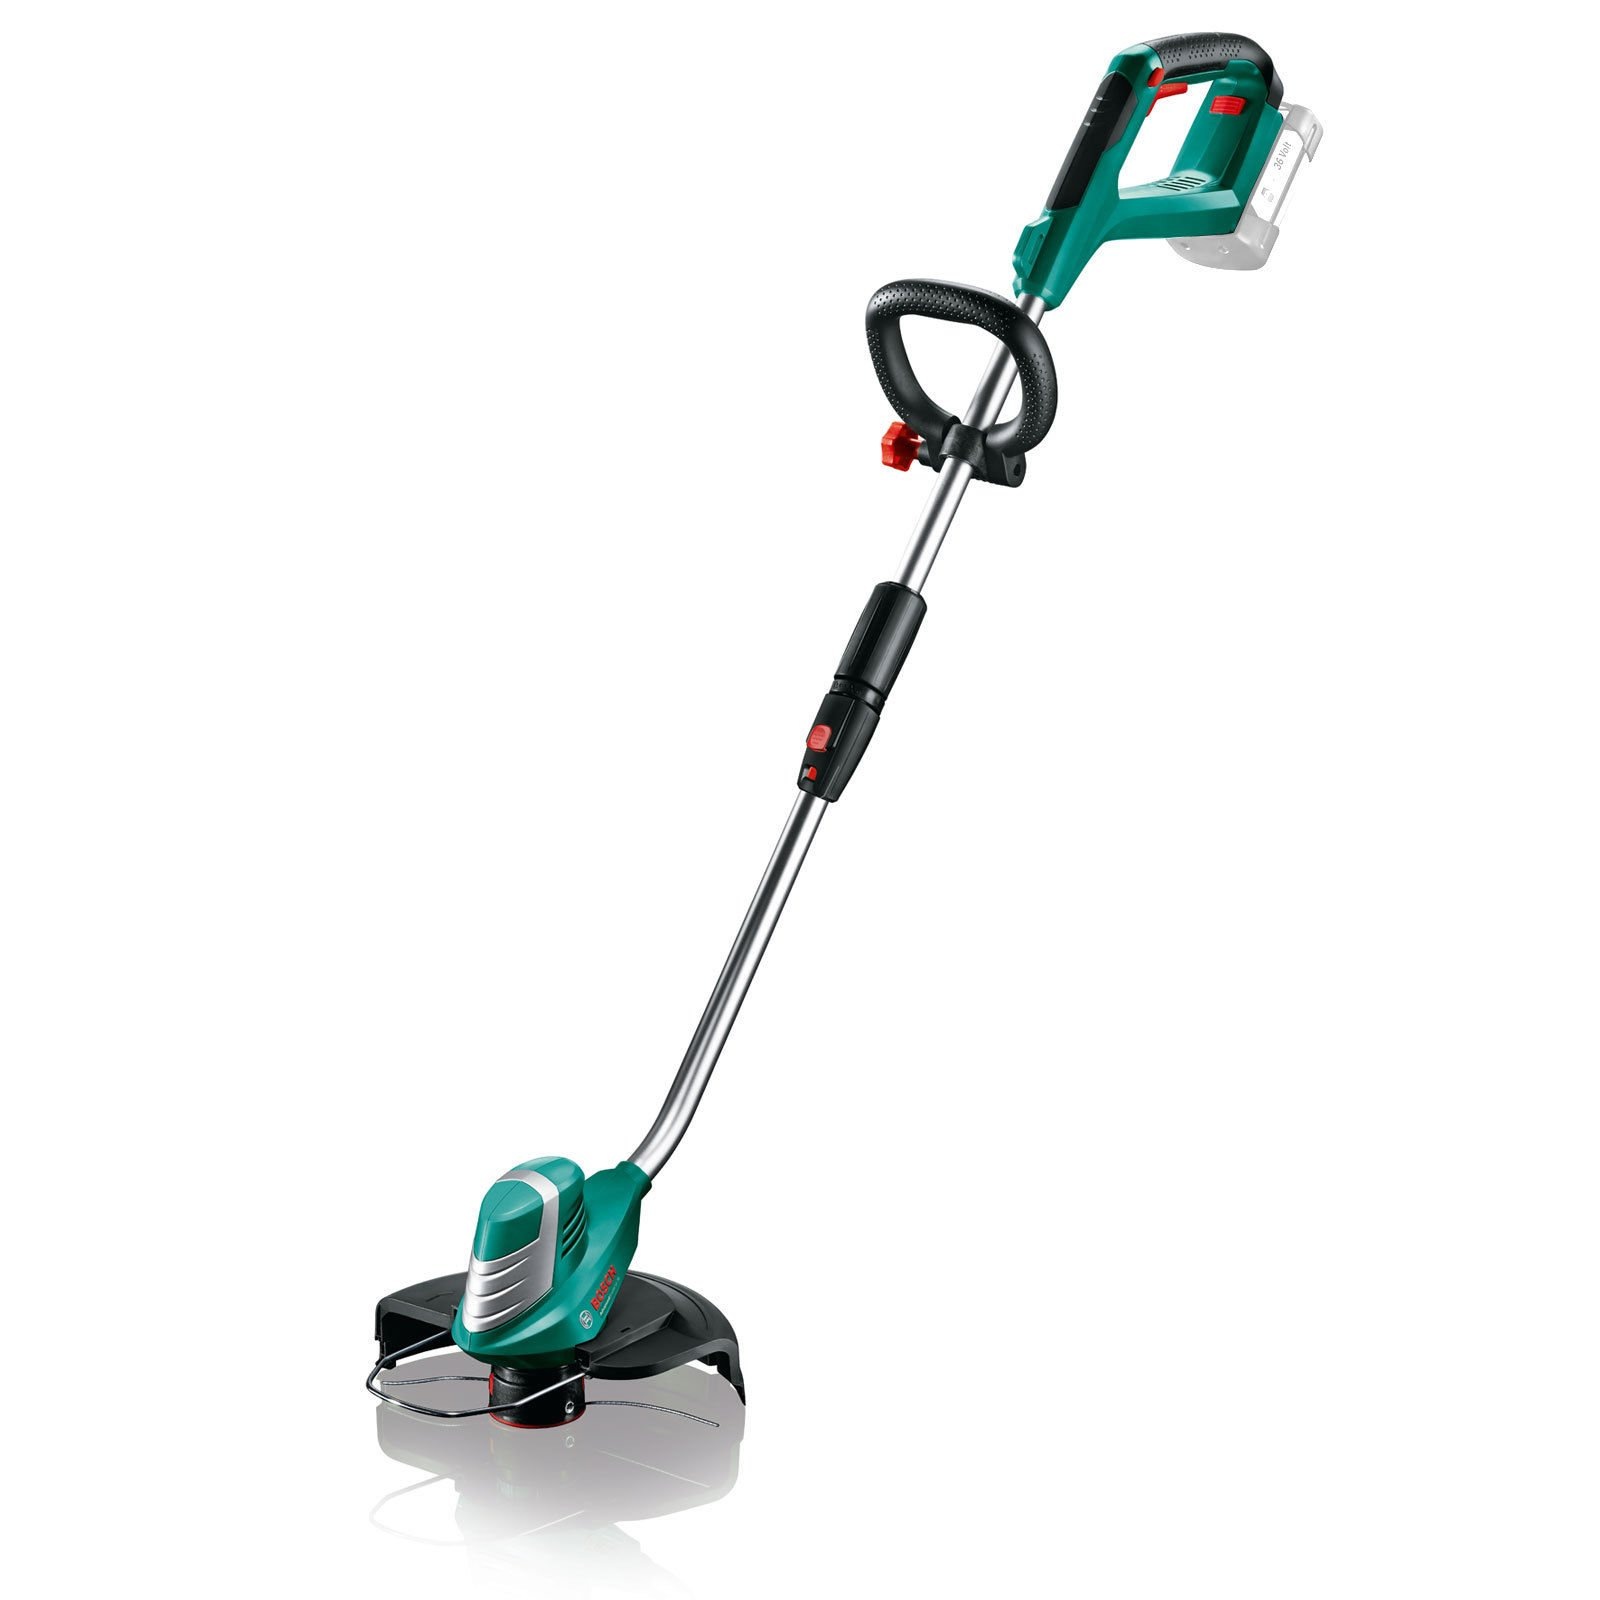 Bosch - AdvancedGrassCut 36 Grass Trimmer 36V Solo (Without Battery+Charger)